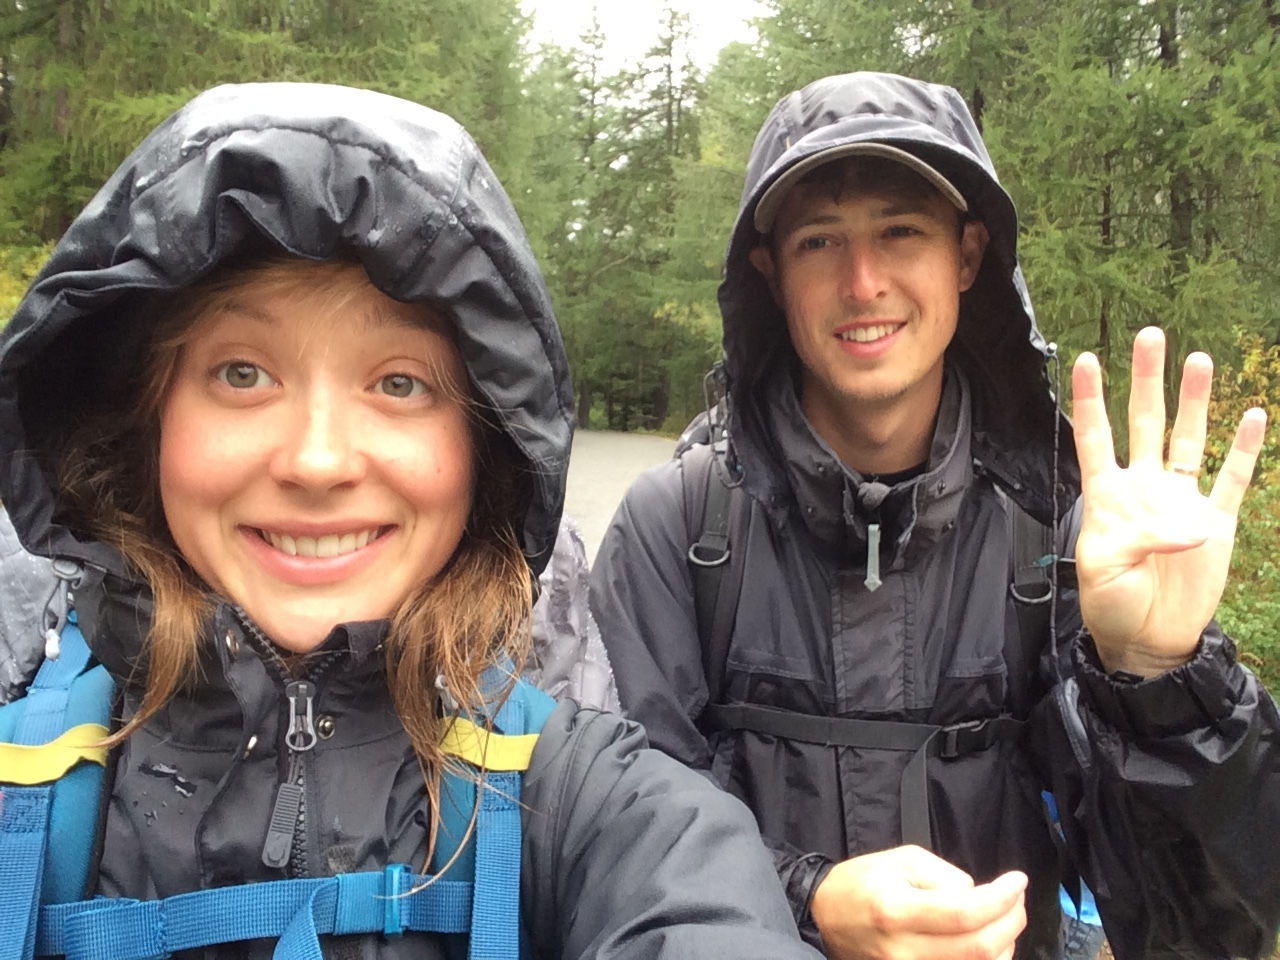 Day four in the rain!